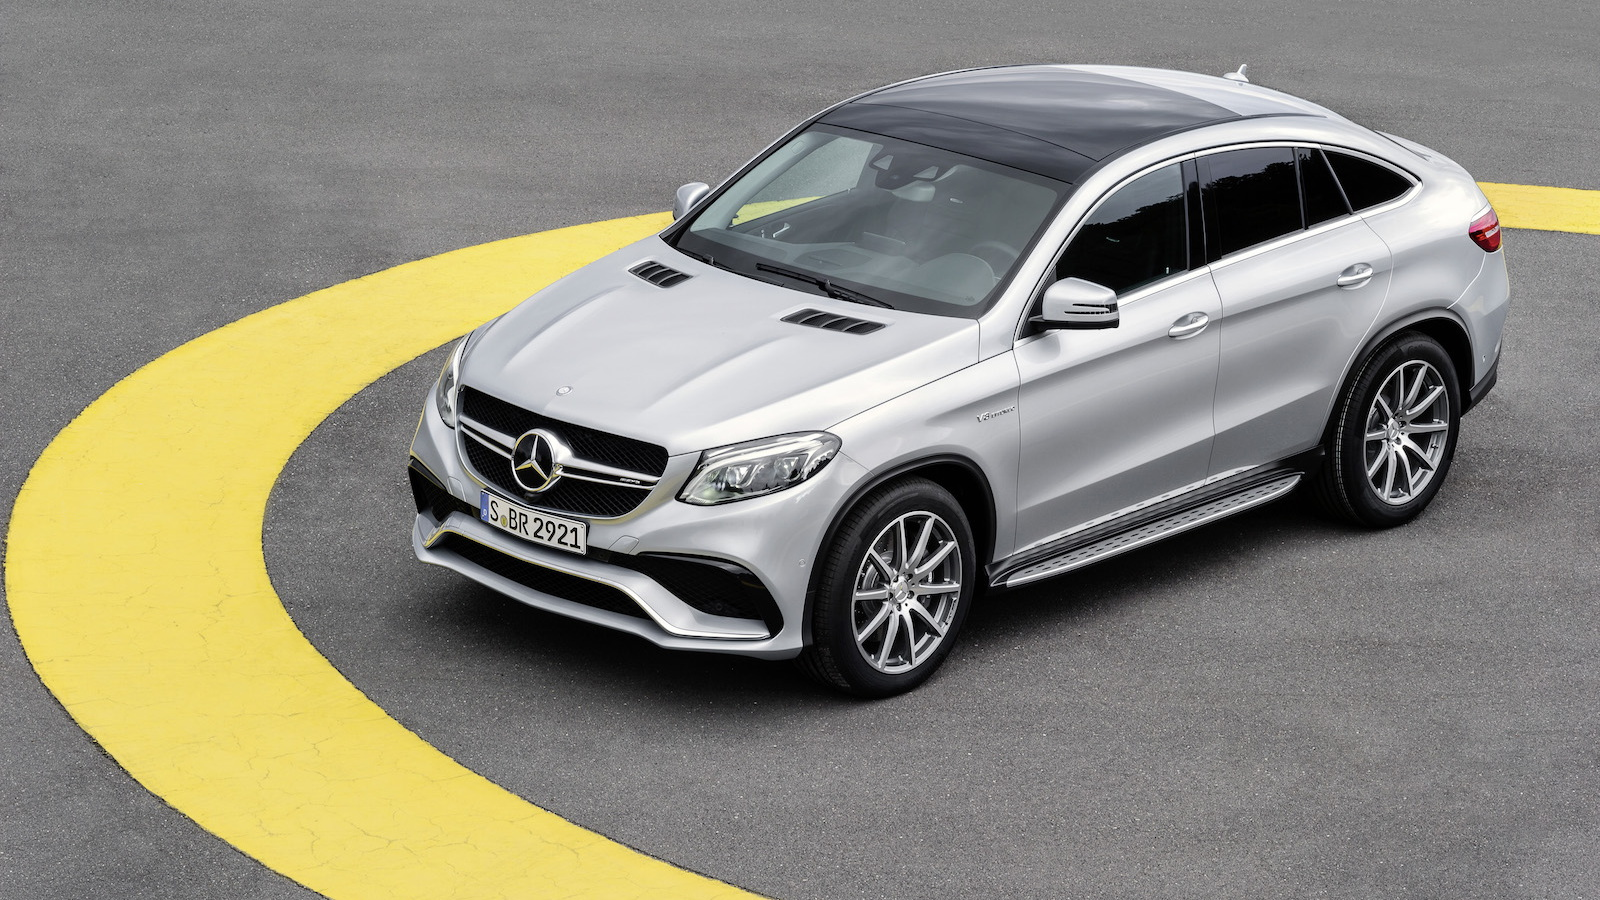 2016 Mercedes-AMG GLE63 S Coupe 4Matic